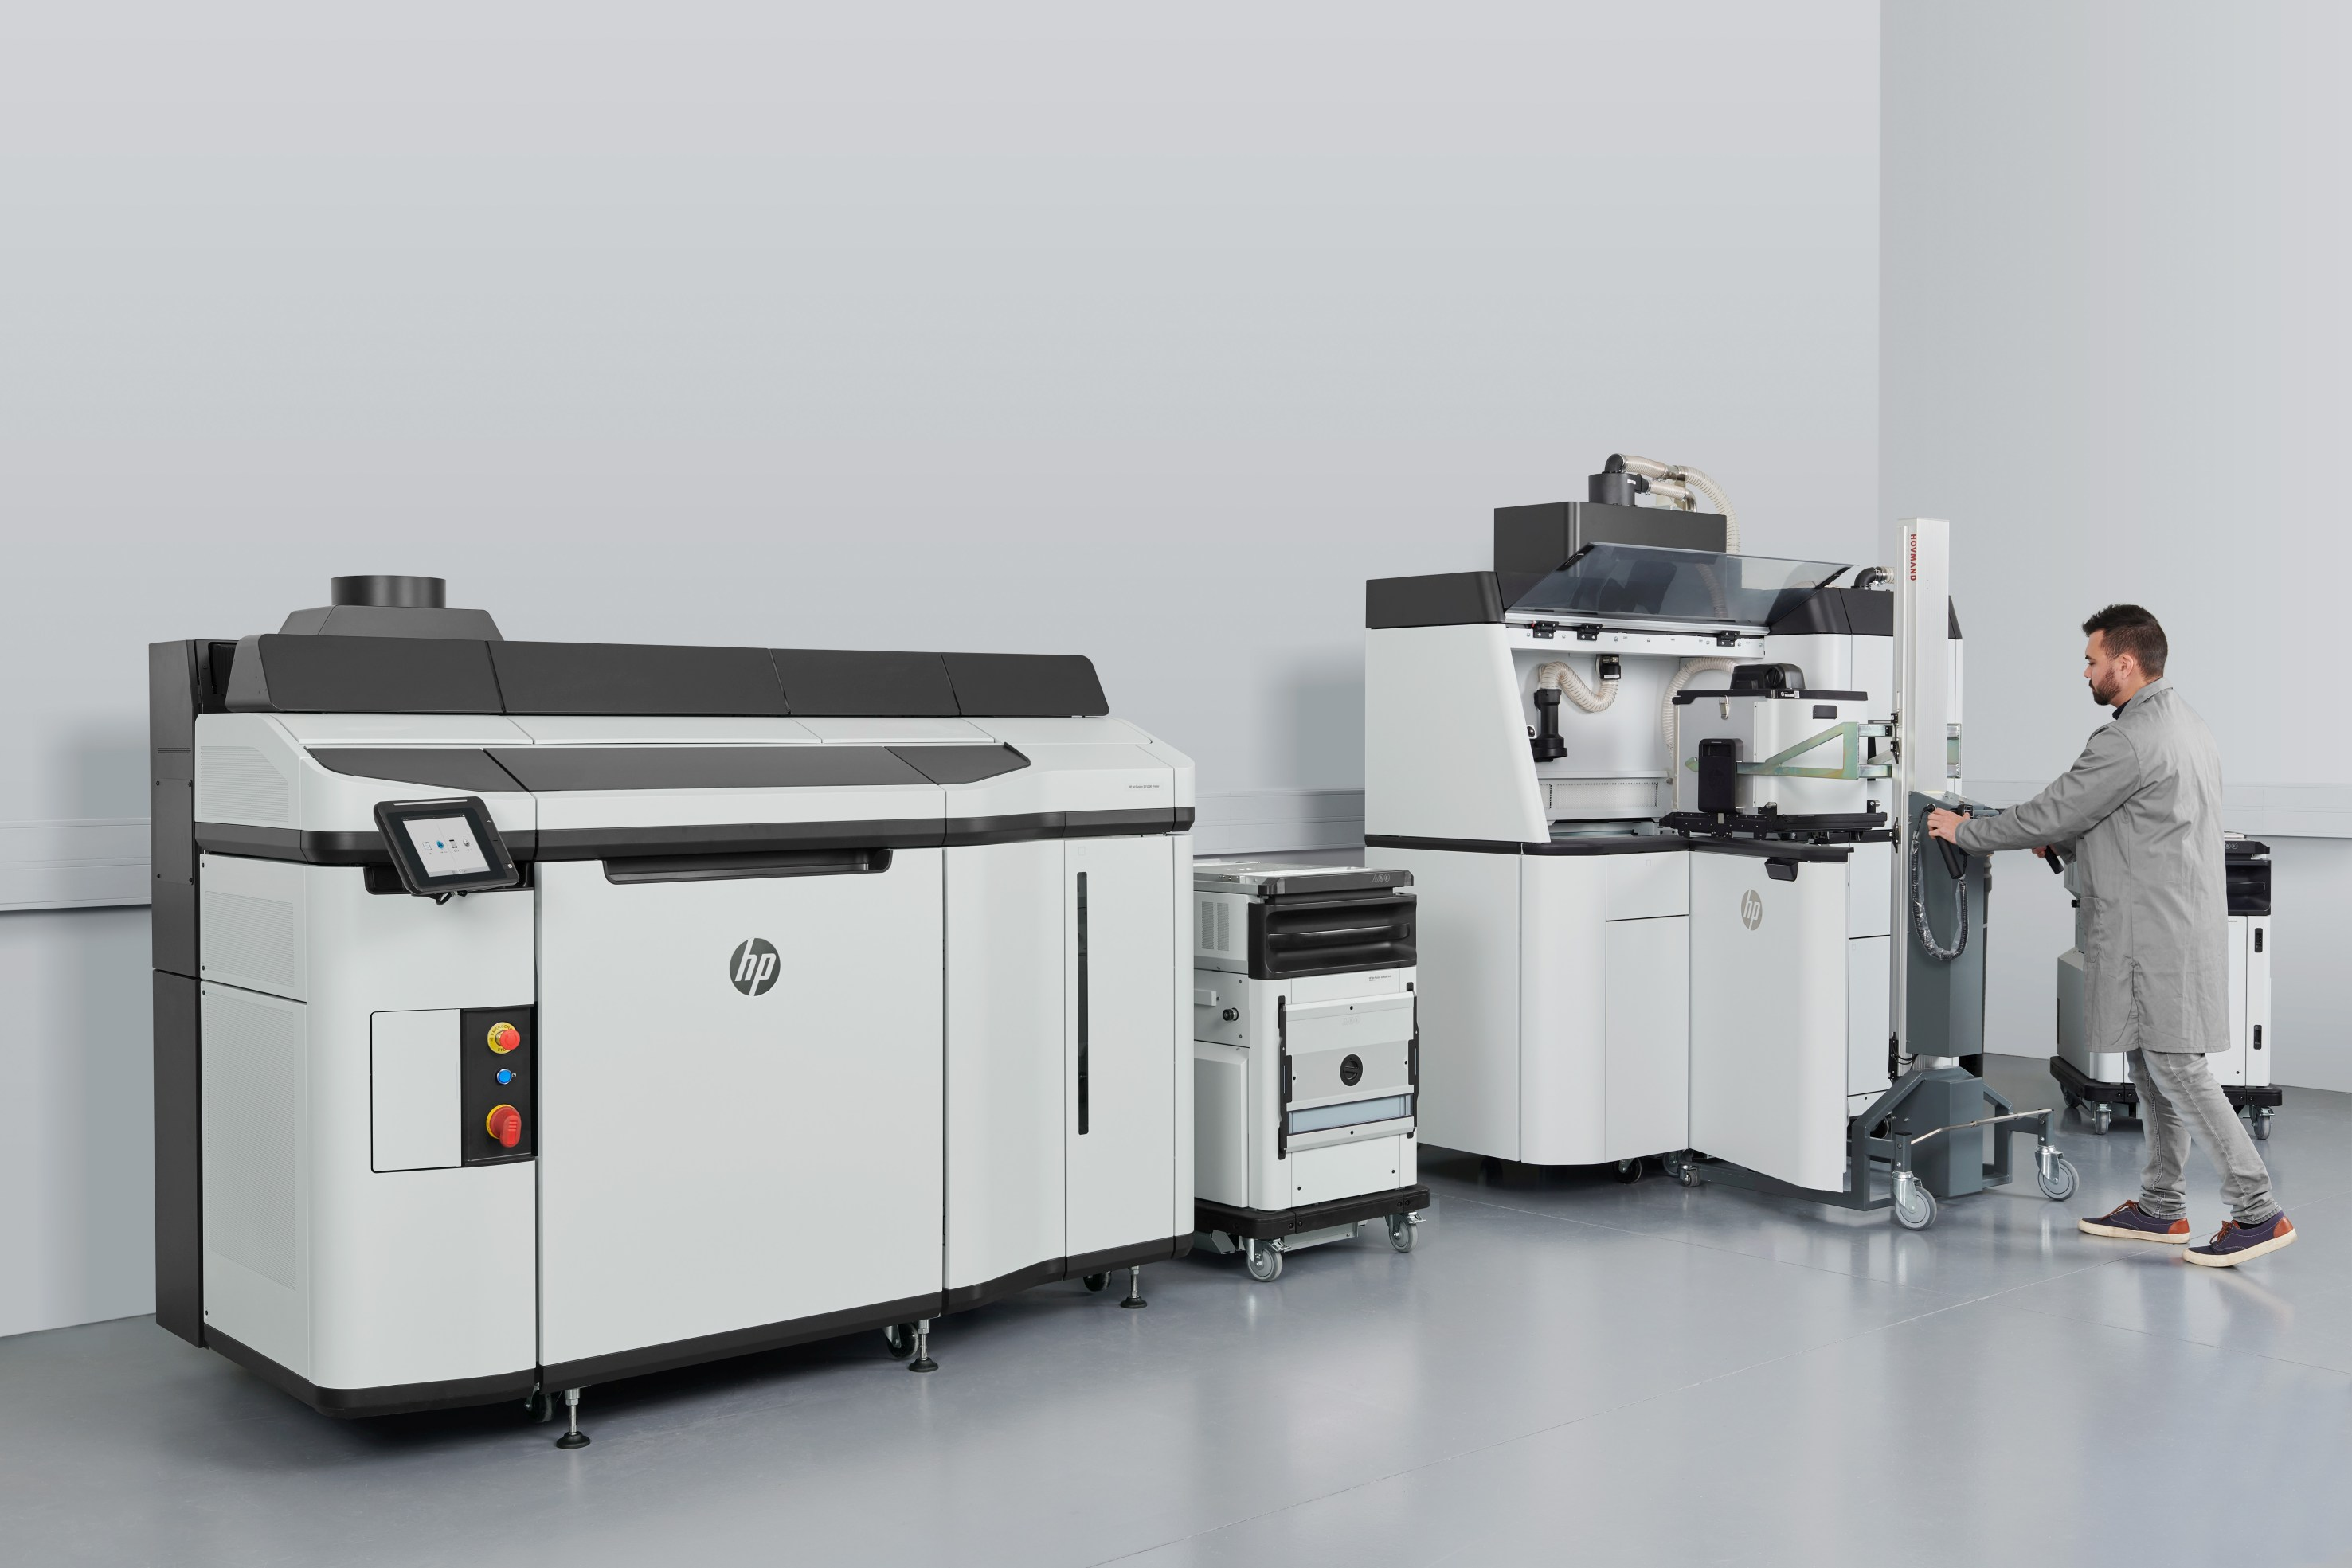 The HP Jet Fusion 5200 system. Photo via HP/AM Solutions.